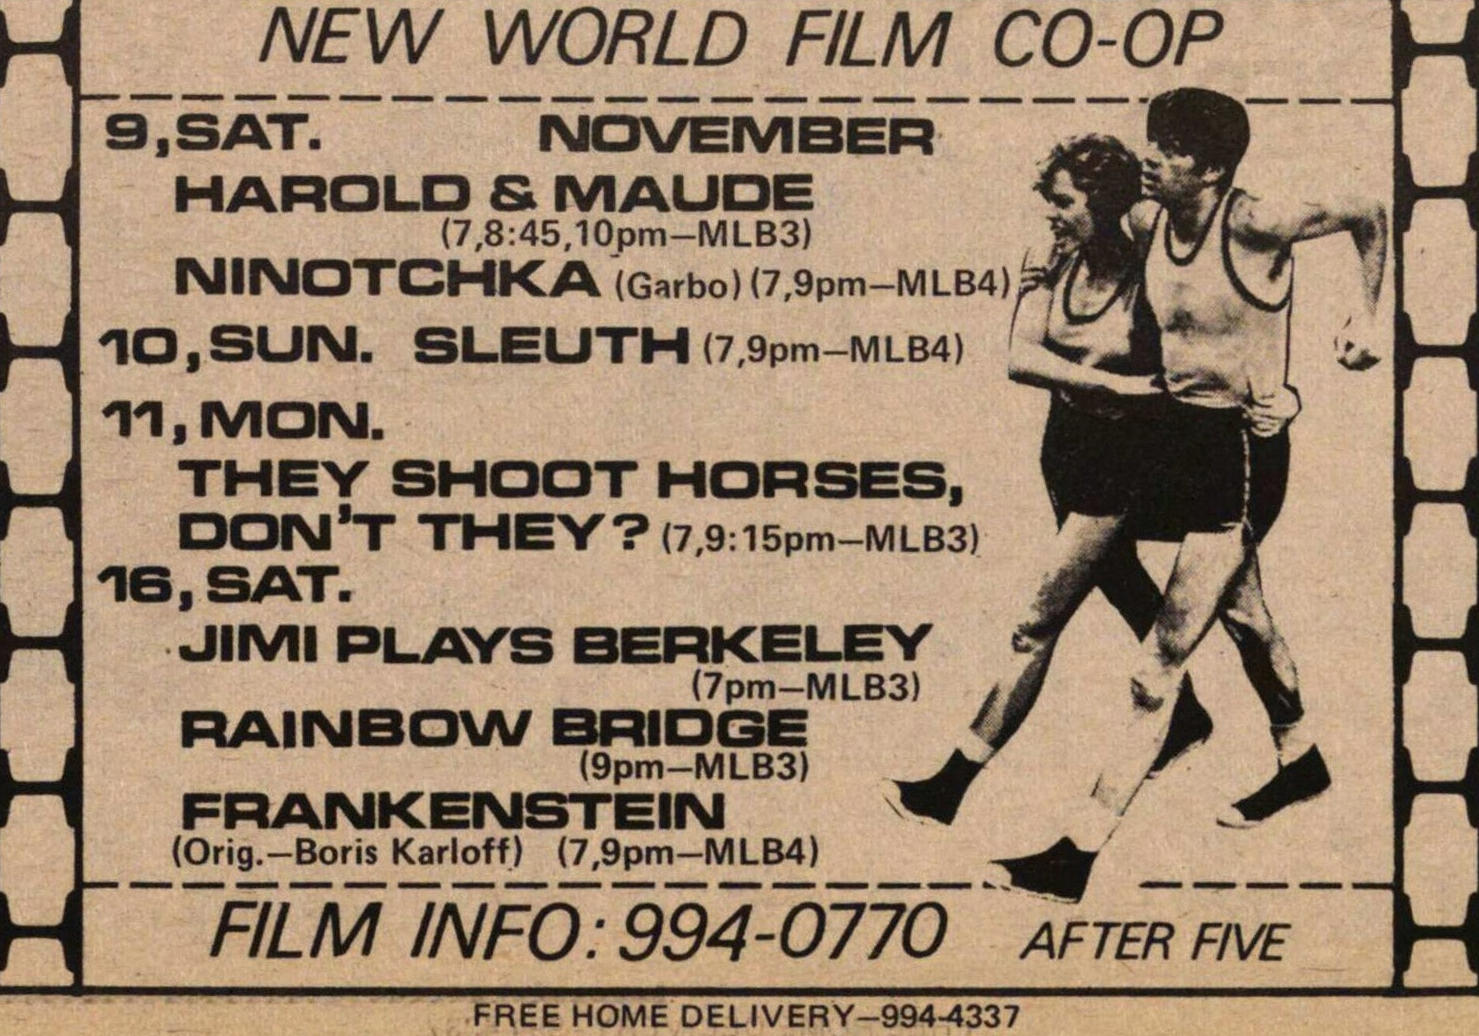 New World Film Co-op image